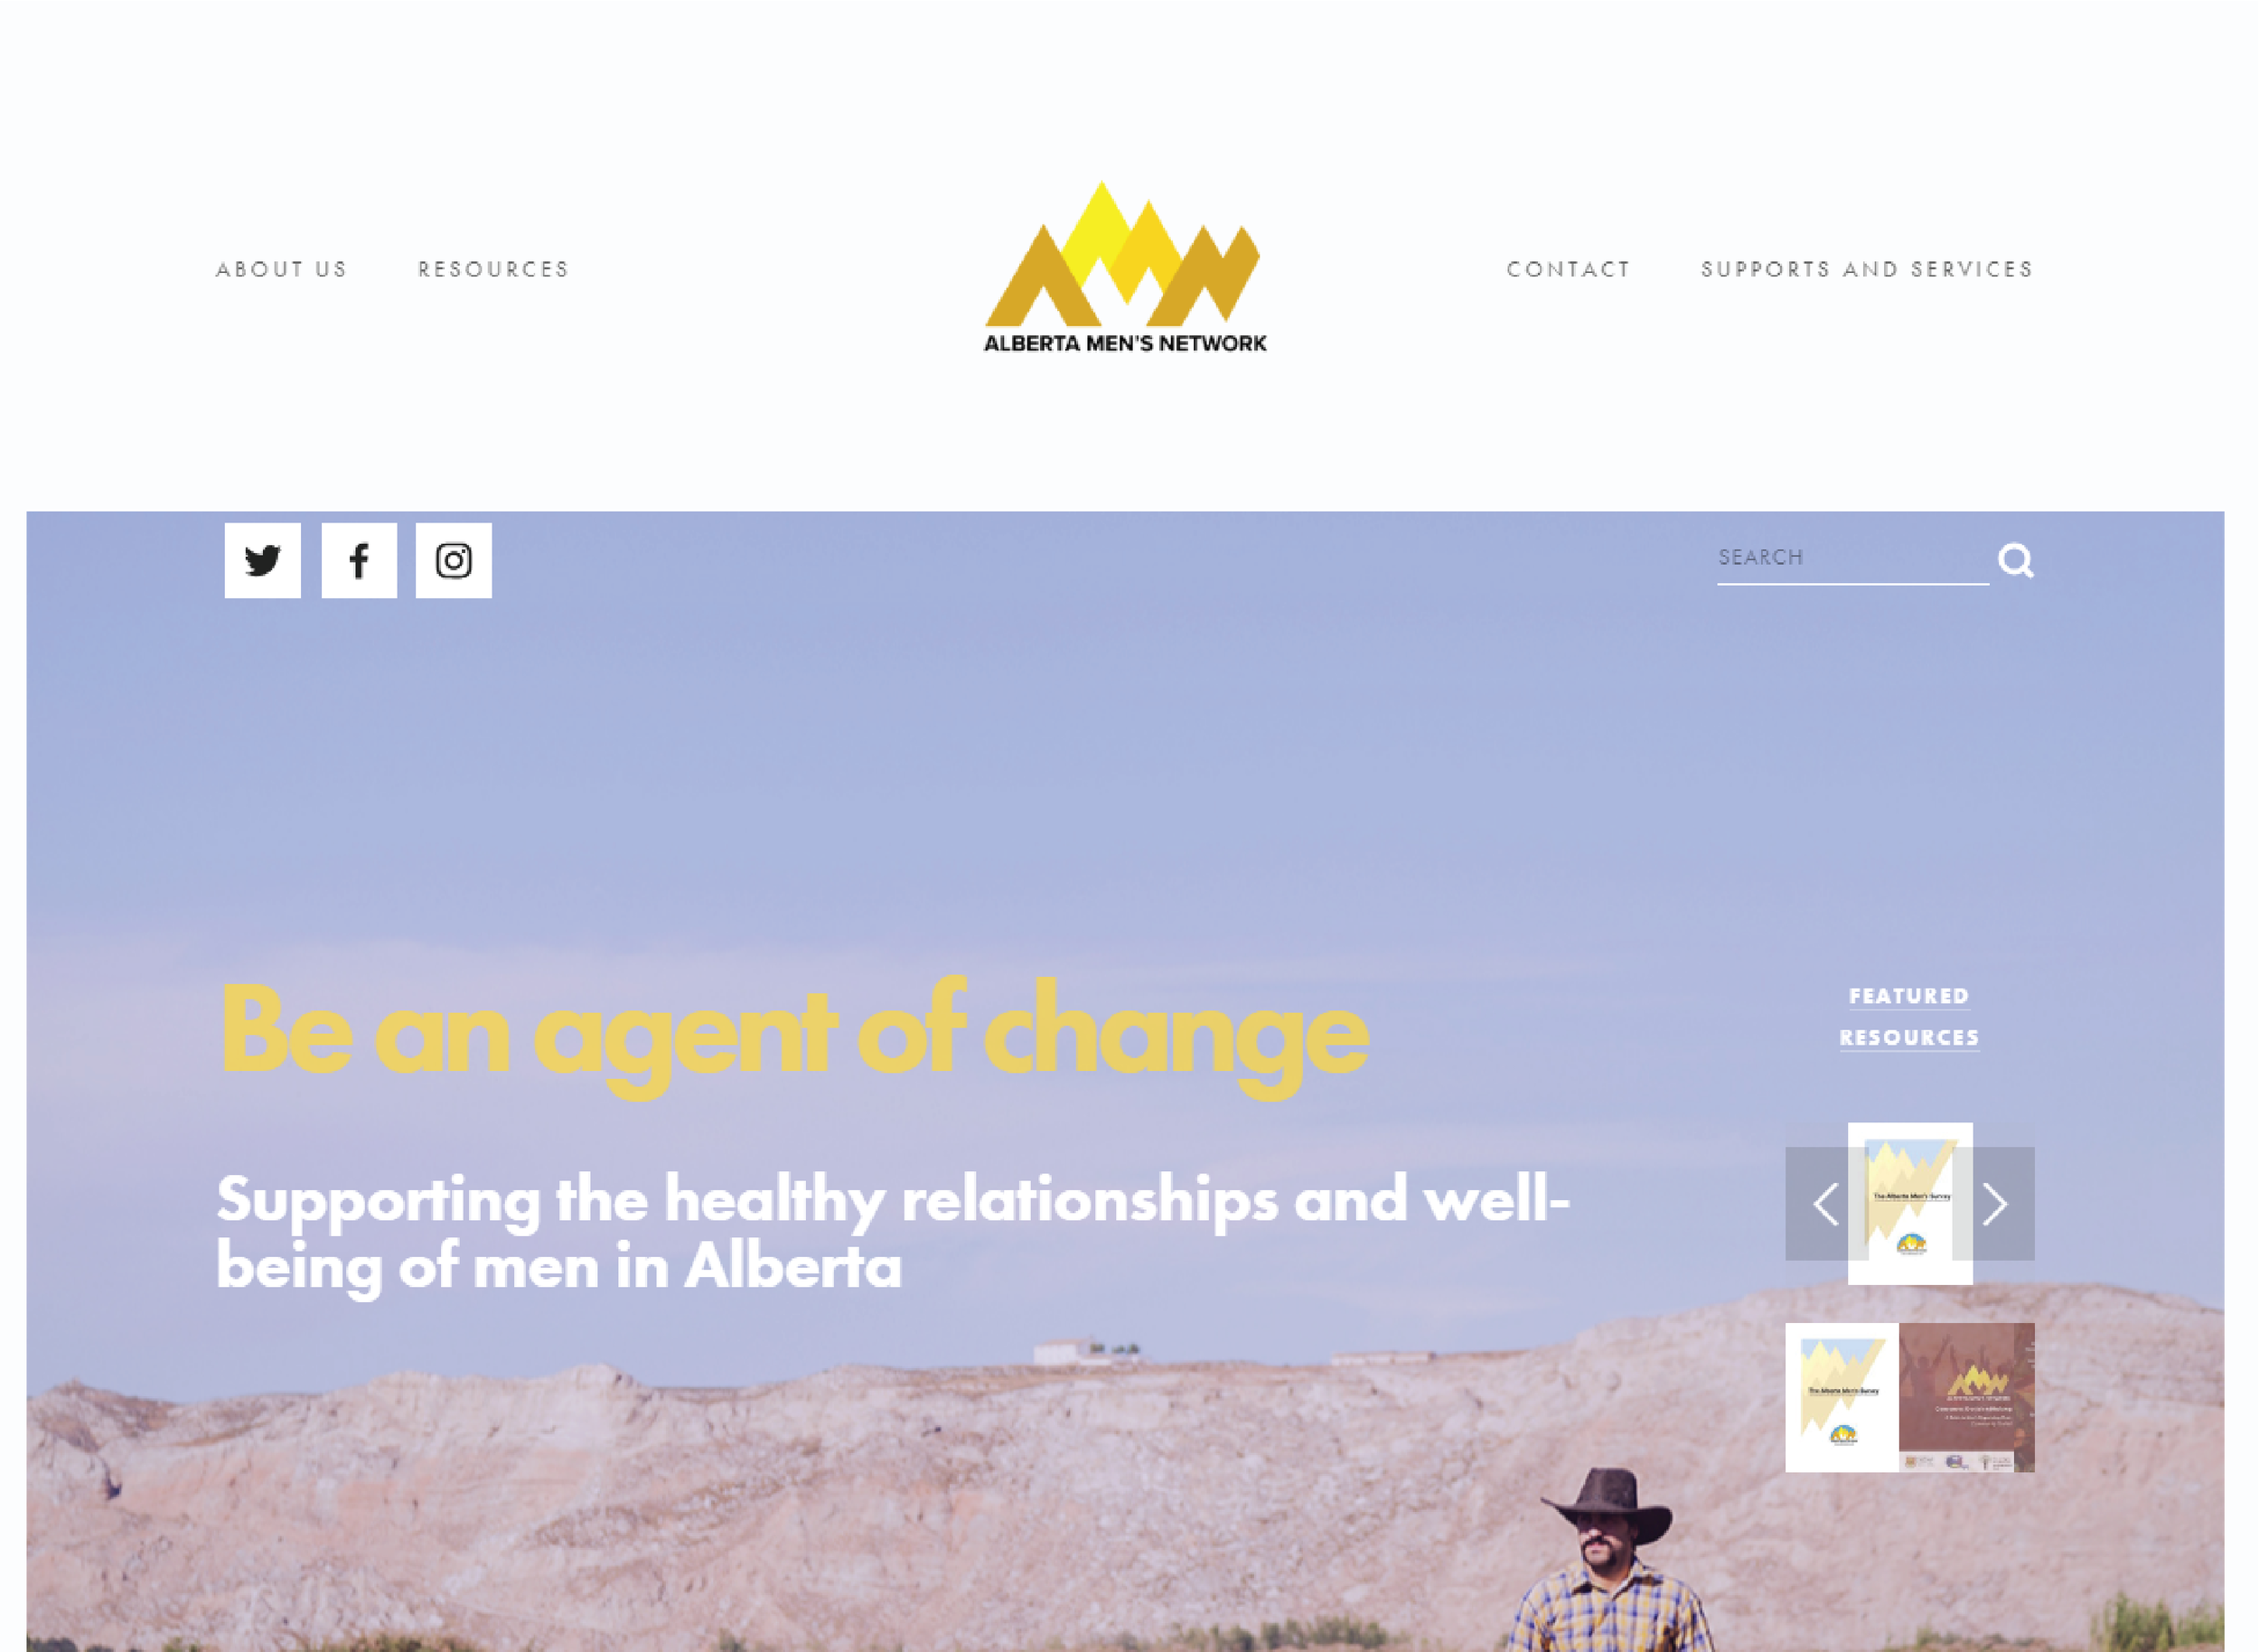 Site re-design with a focus on newly developed resources